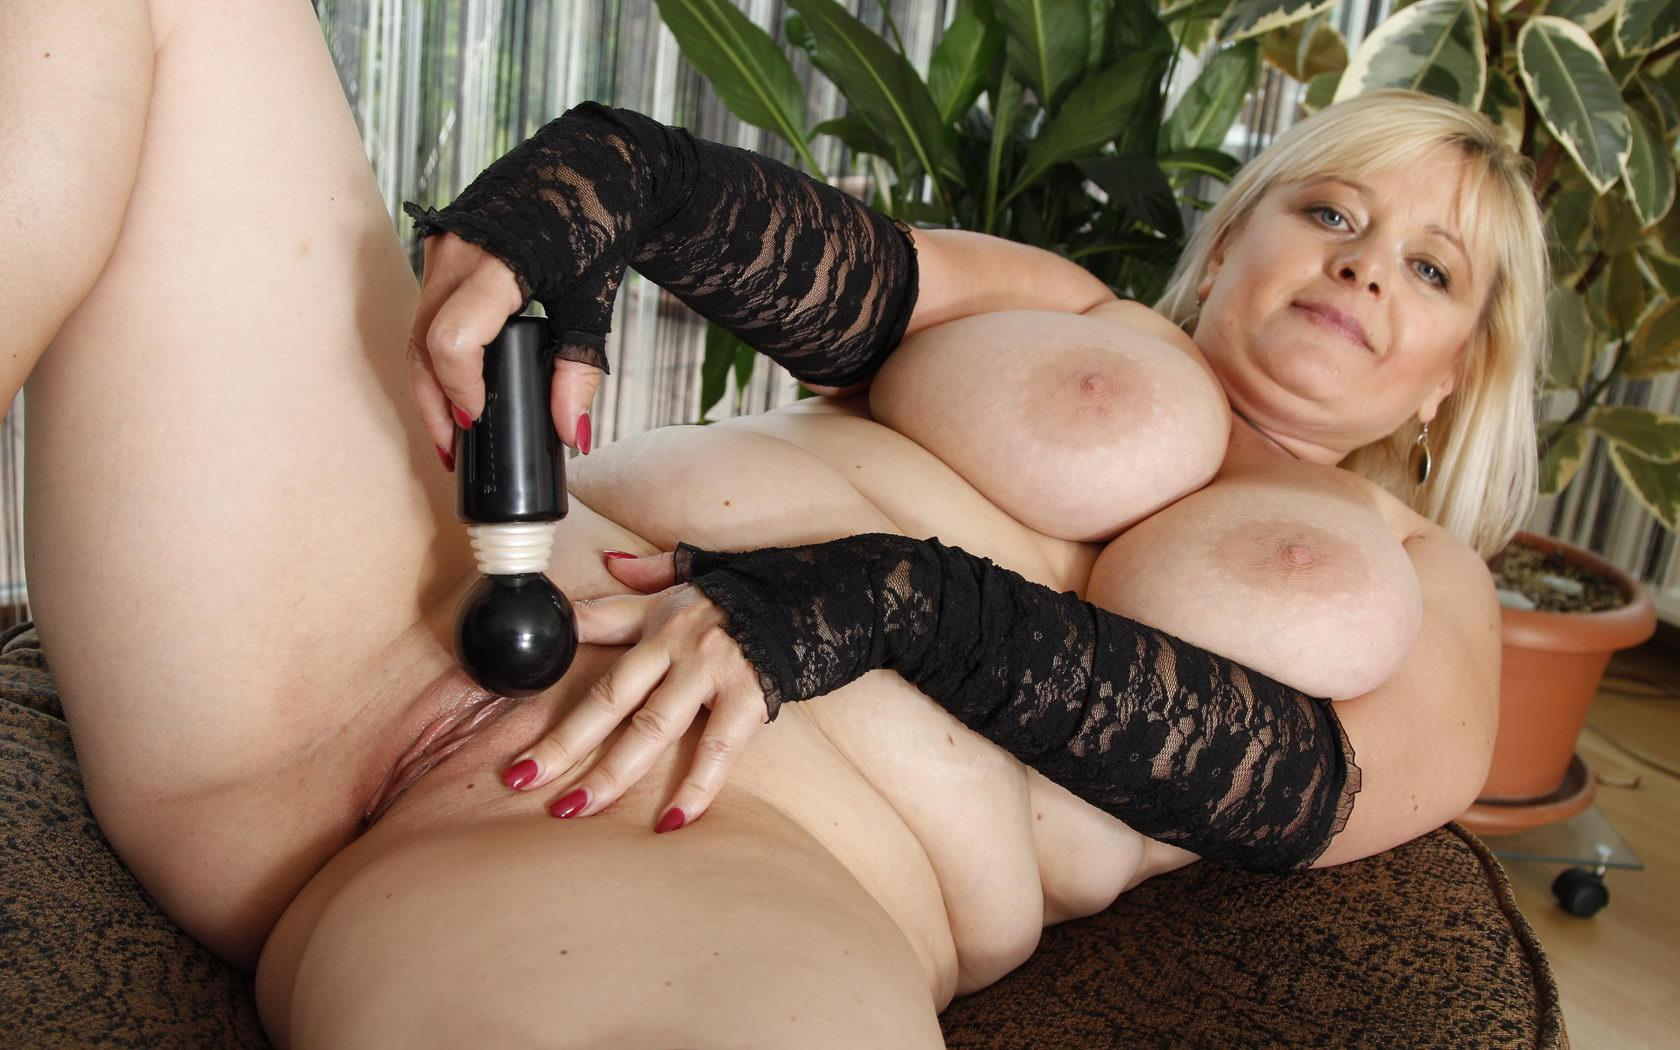 Stacey a granny widdow is a cute aged whore from netherlands